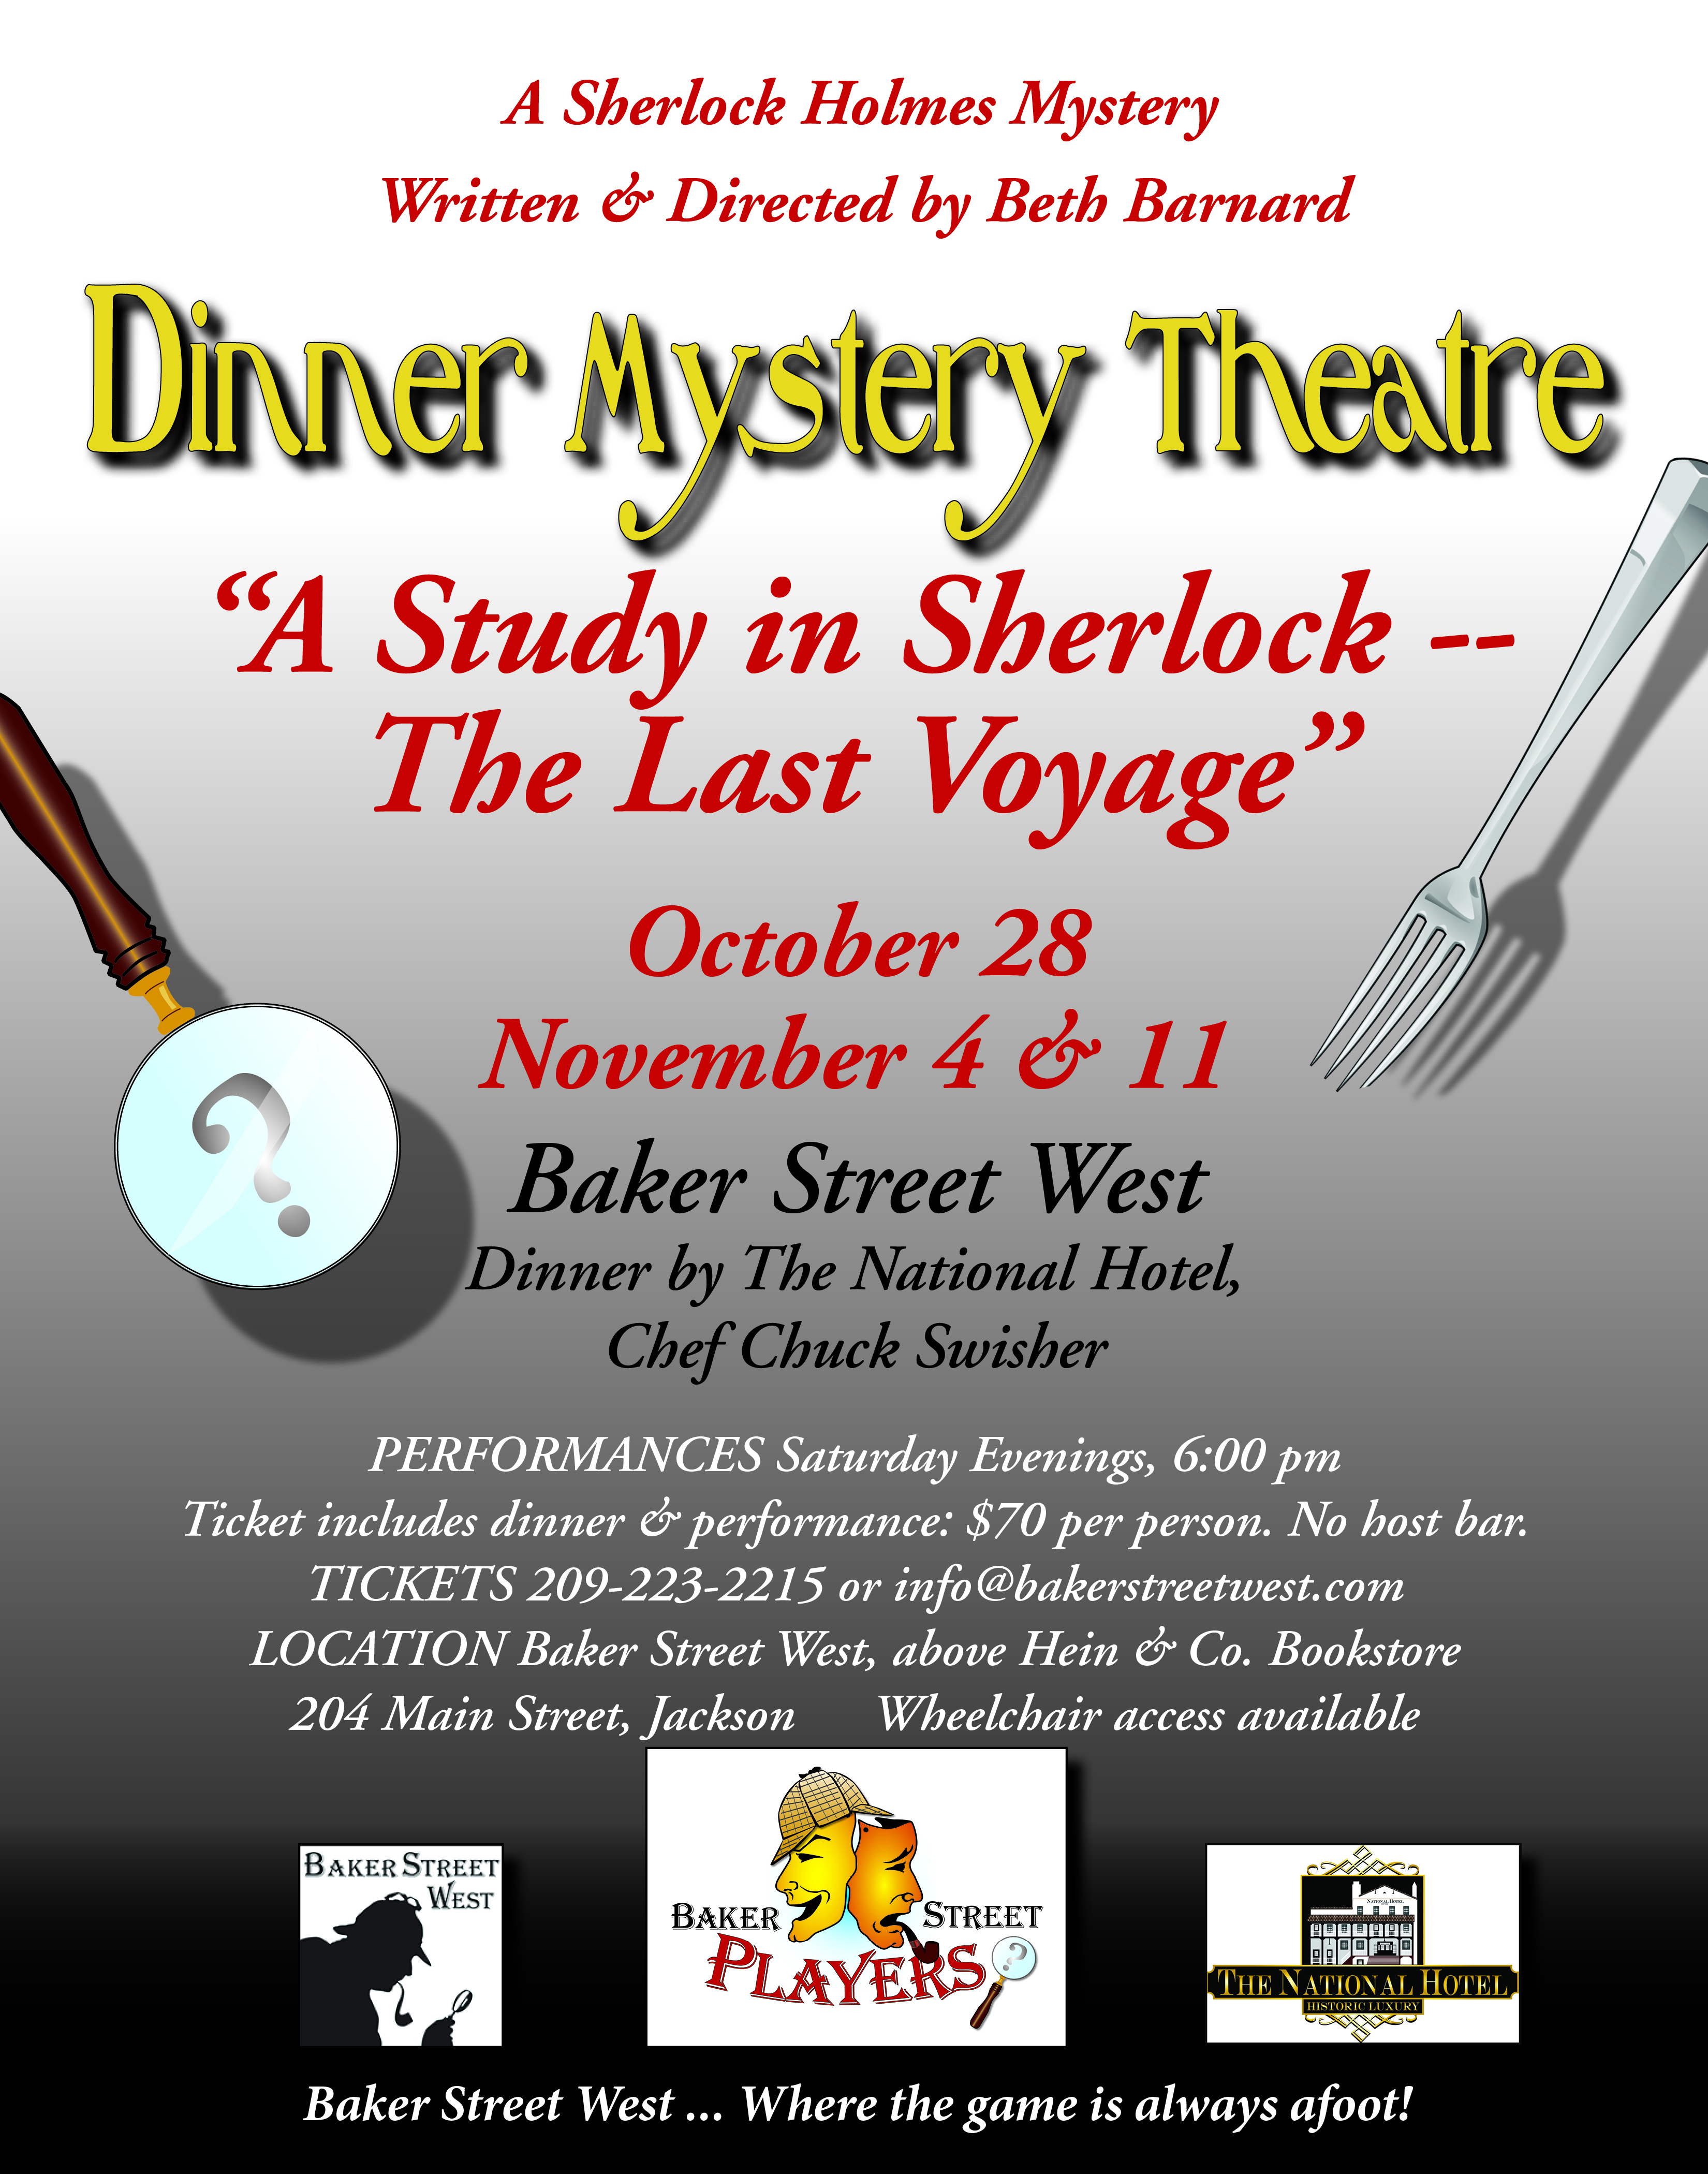 dinner-mystery-theatre